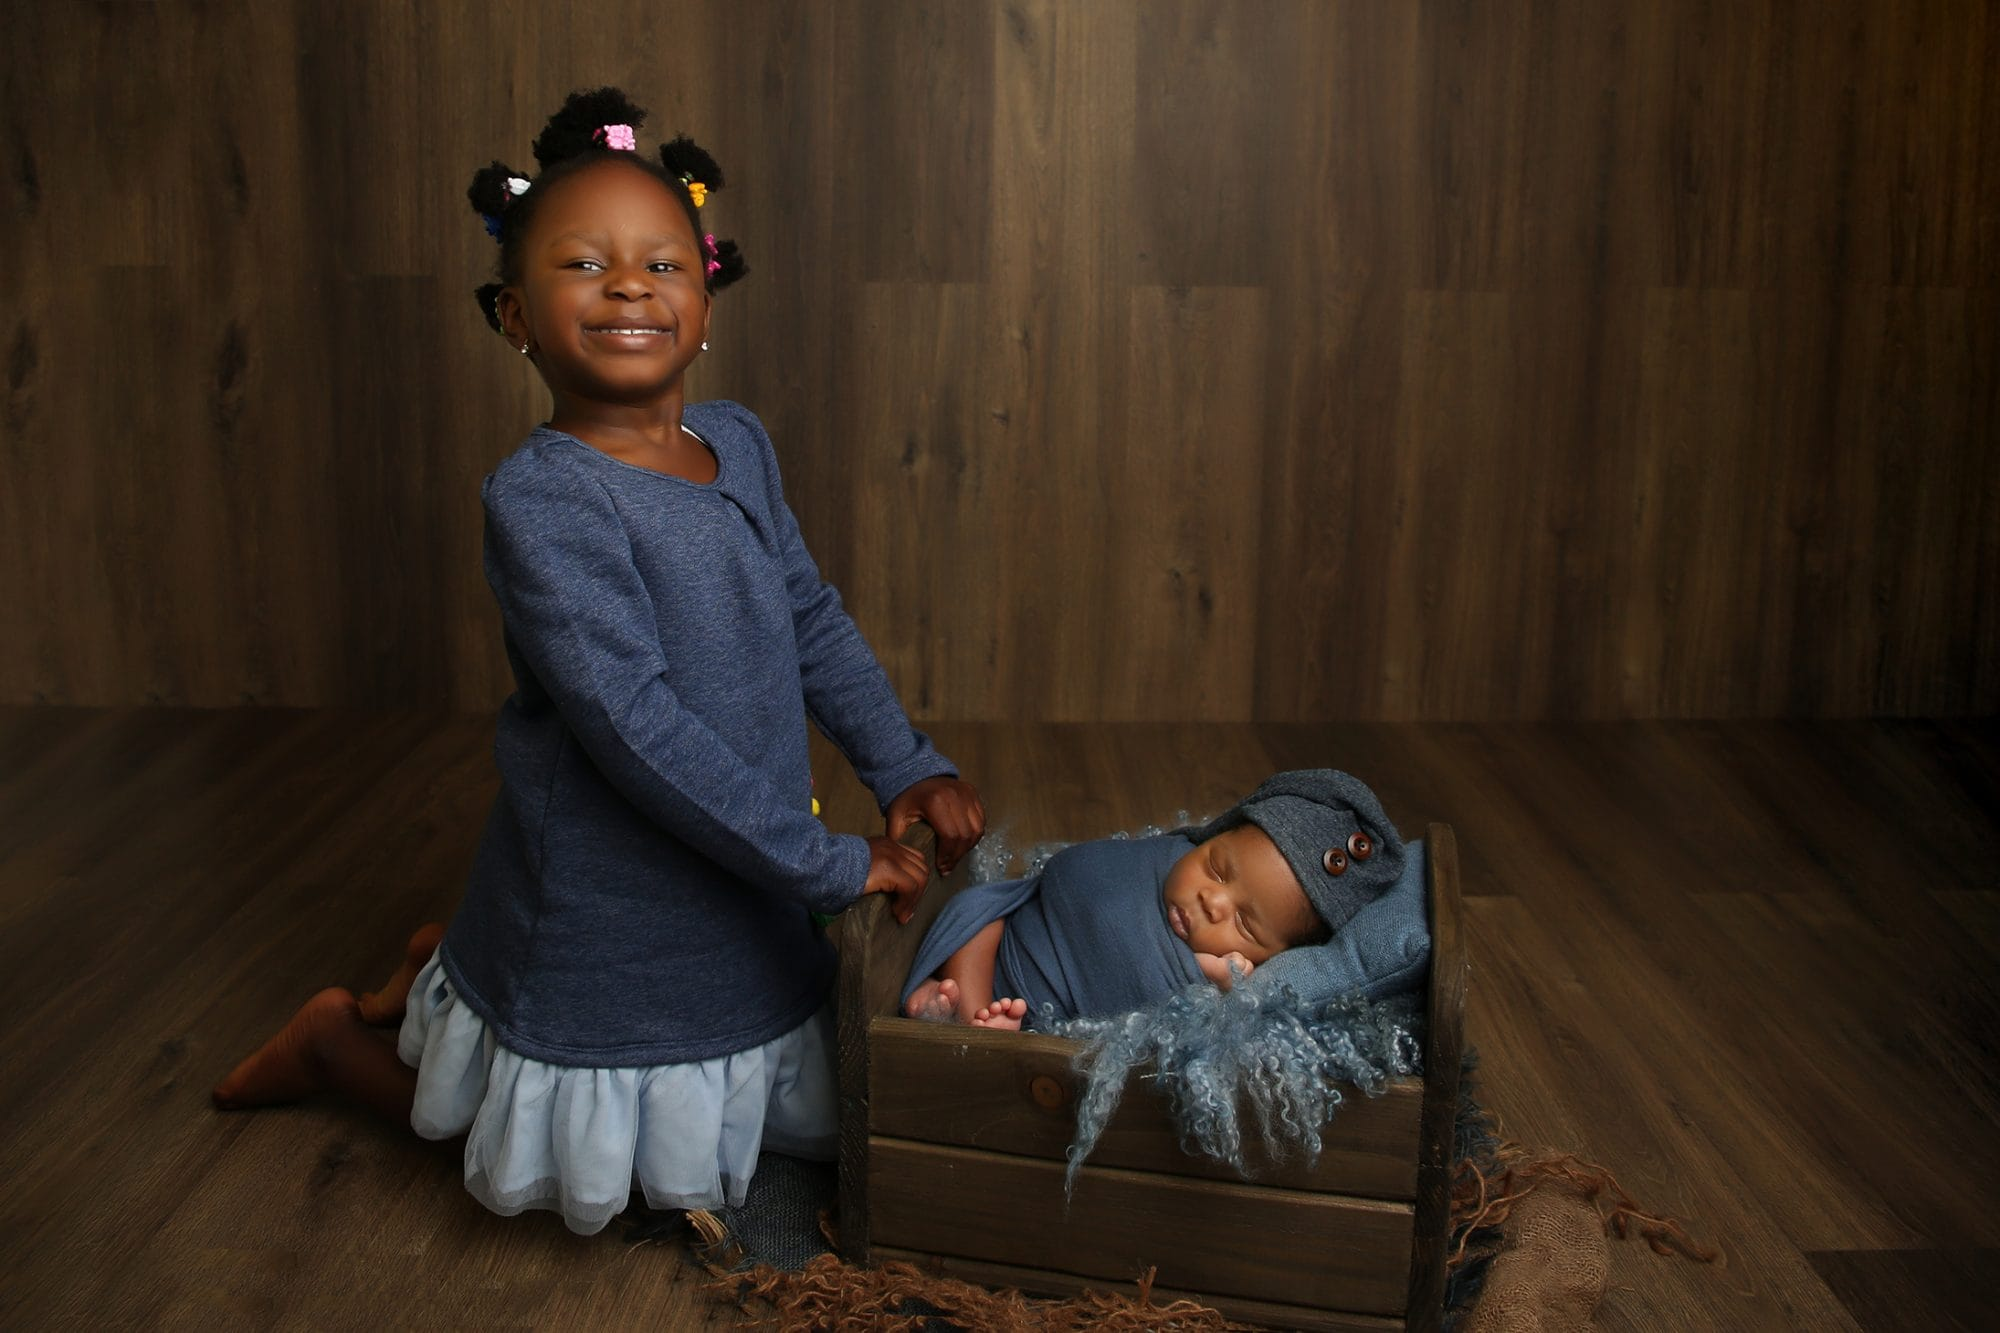 a nigerian girl on her knees holding onto a newborn bed with her newborn baby brother sleeping inside while looking at camera smiling